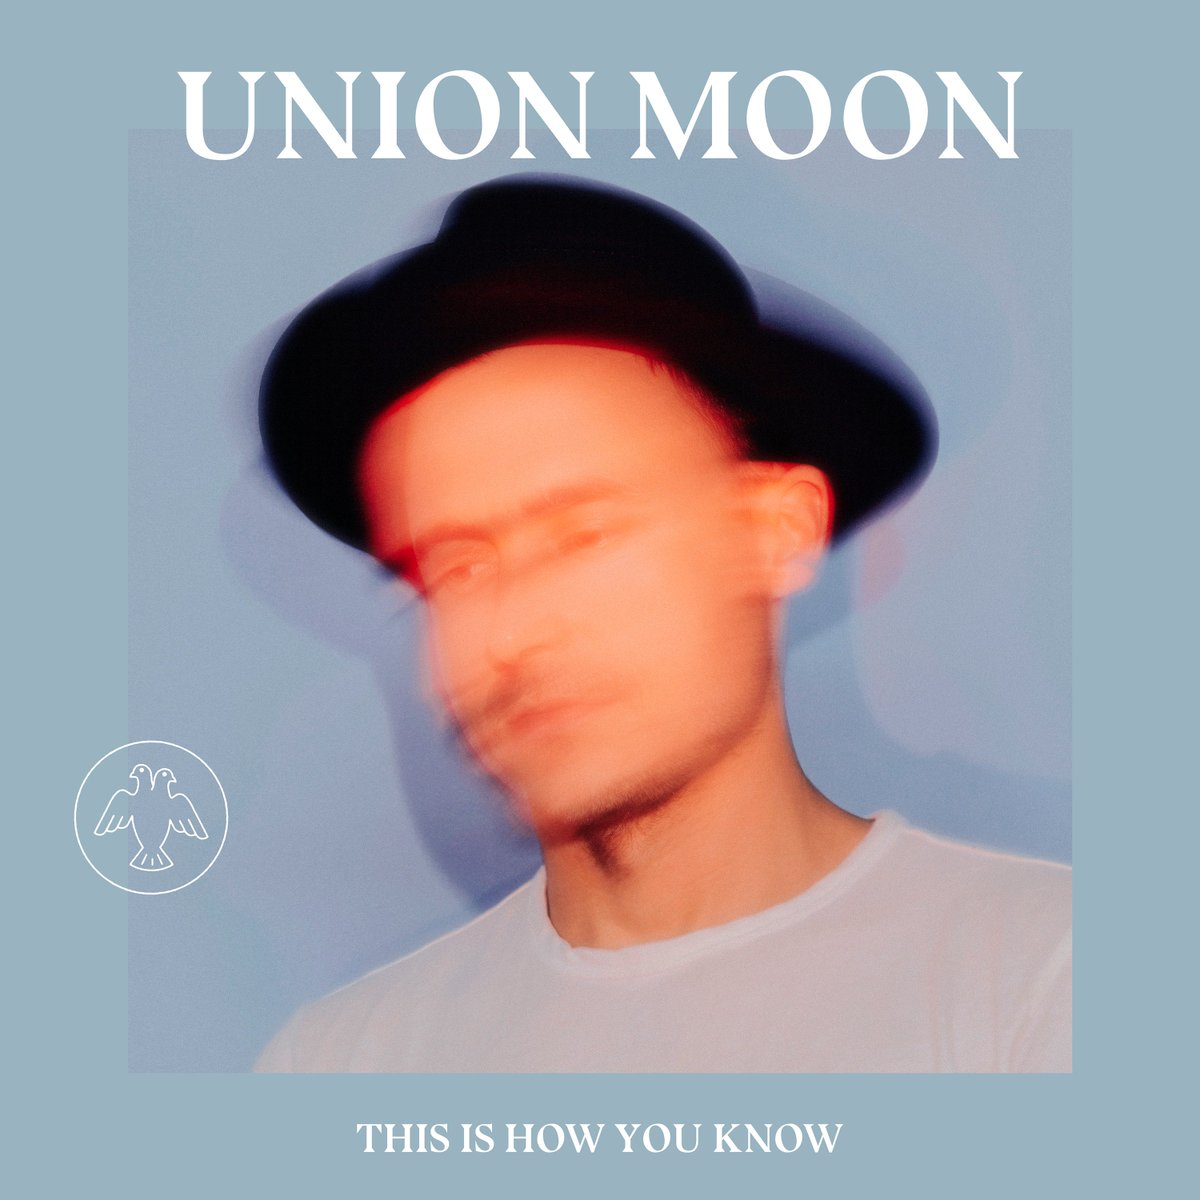 Proud to announce that our very own Joe King just released two songs from his new project Union Moon! Check it out - https://t.co/AMxunDshAi https://t.co/cz4lw8XHYt